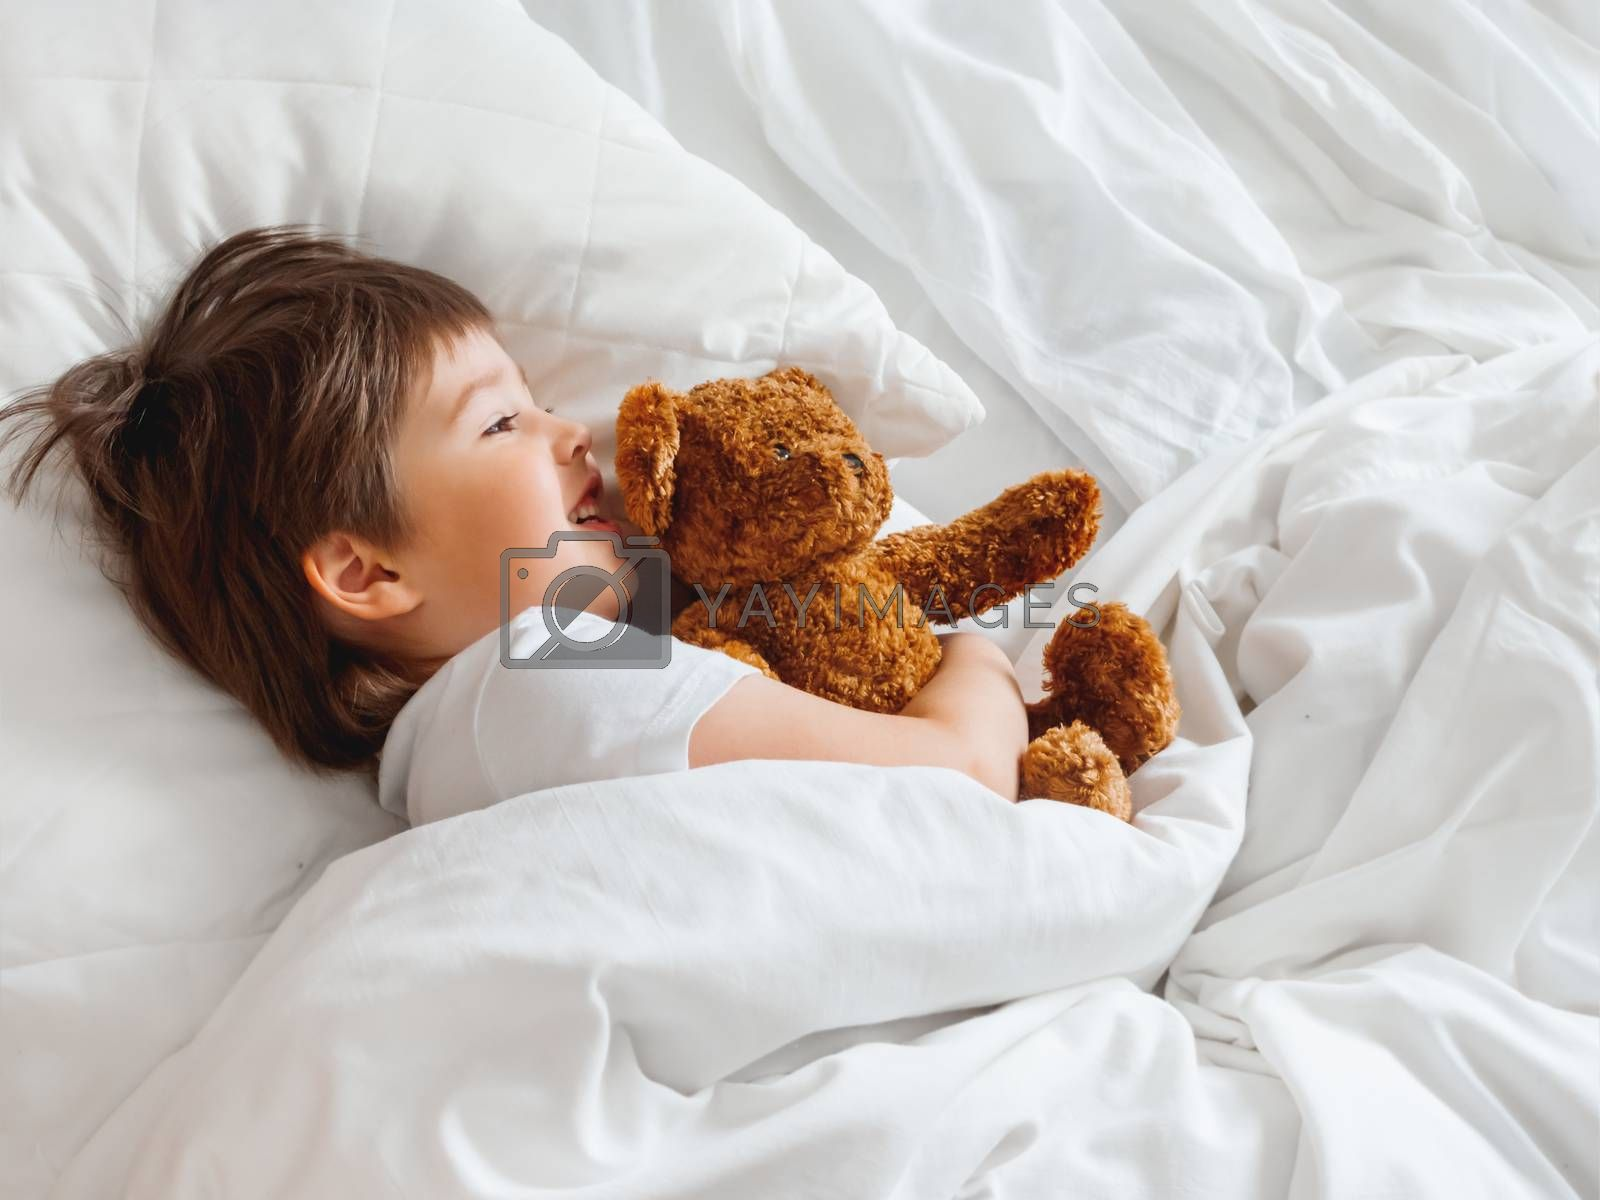 Toddler lies in bed with cute teddy bear. Little boy under white blanket with fluffy toy. Plush guard watches out child's sleep. Morning bedtime at cozy home.